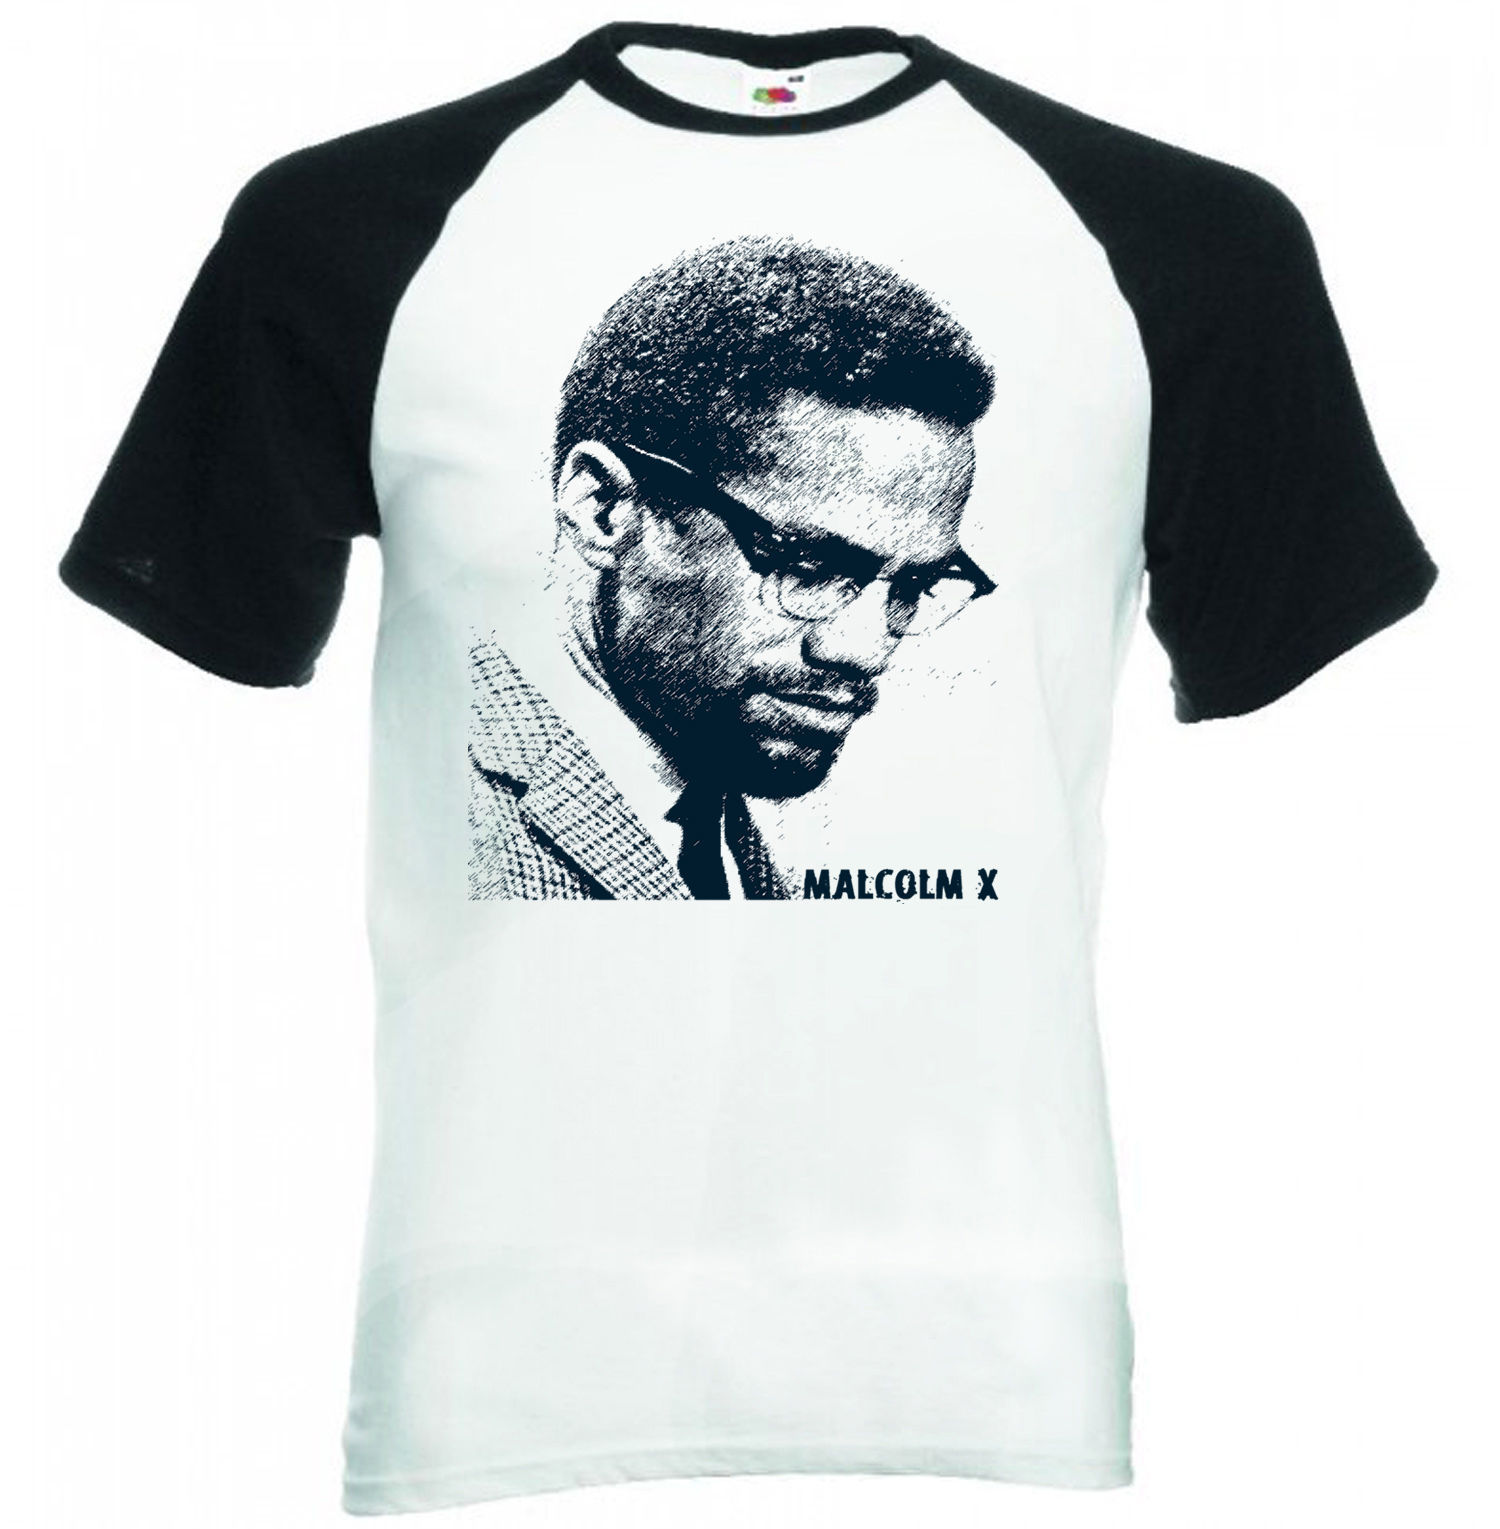 Primary image for MALCOLM X - BLACK SLEEVED BASEBALL TSHIRT S-M-L-XL-XXL